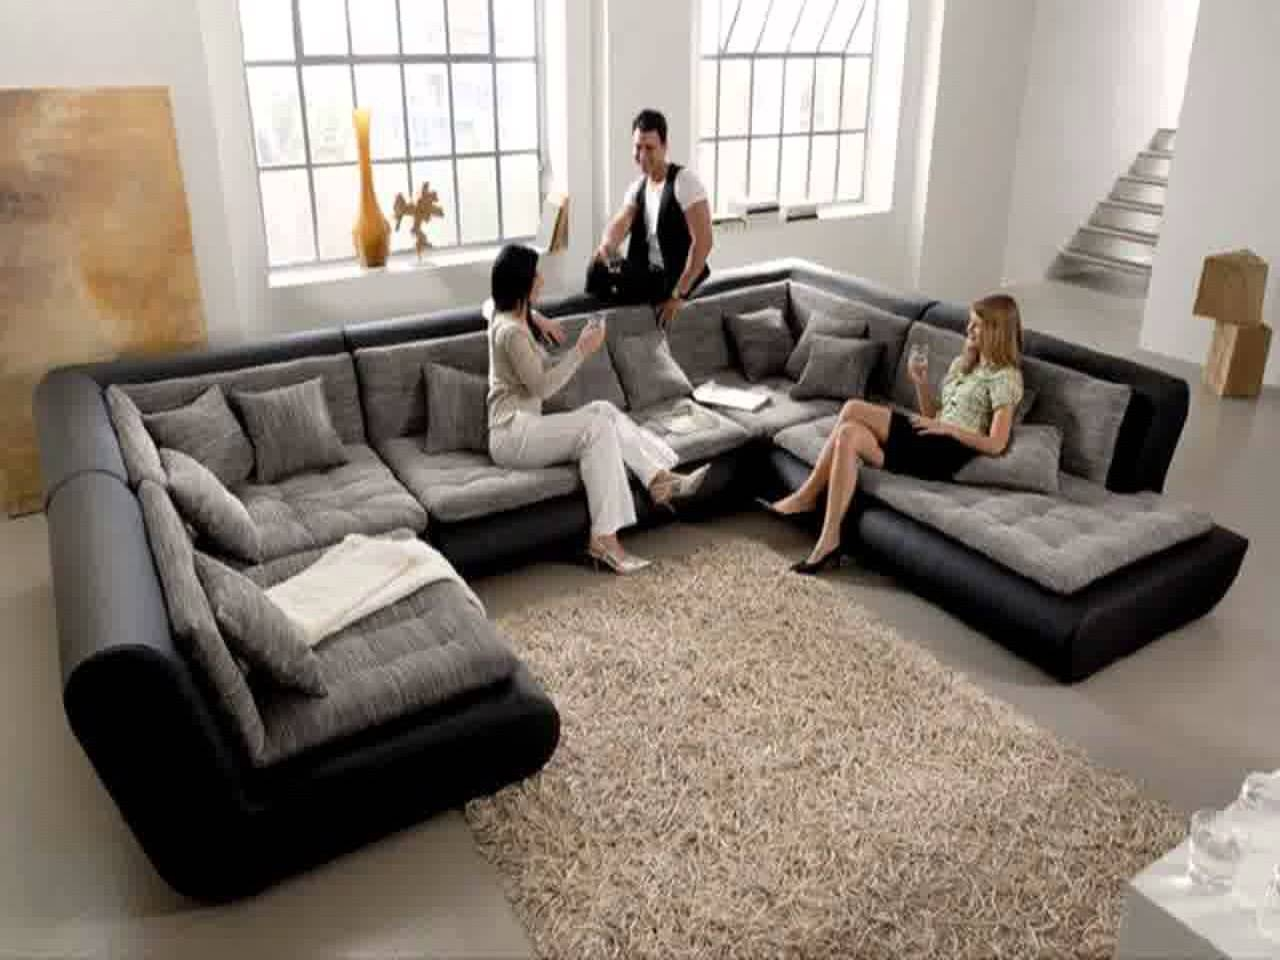 Sofas Big Lots All Information Sofa Desain Ideas With Big Lots Sofa Sleeper (Image 7 of 15)